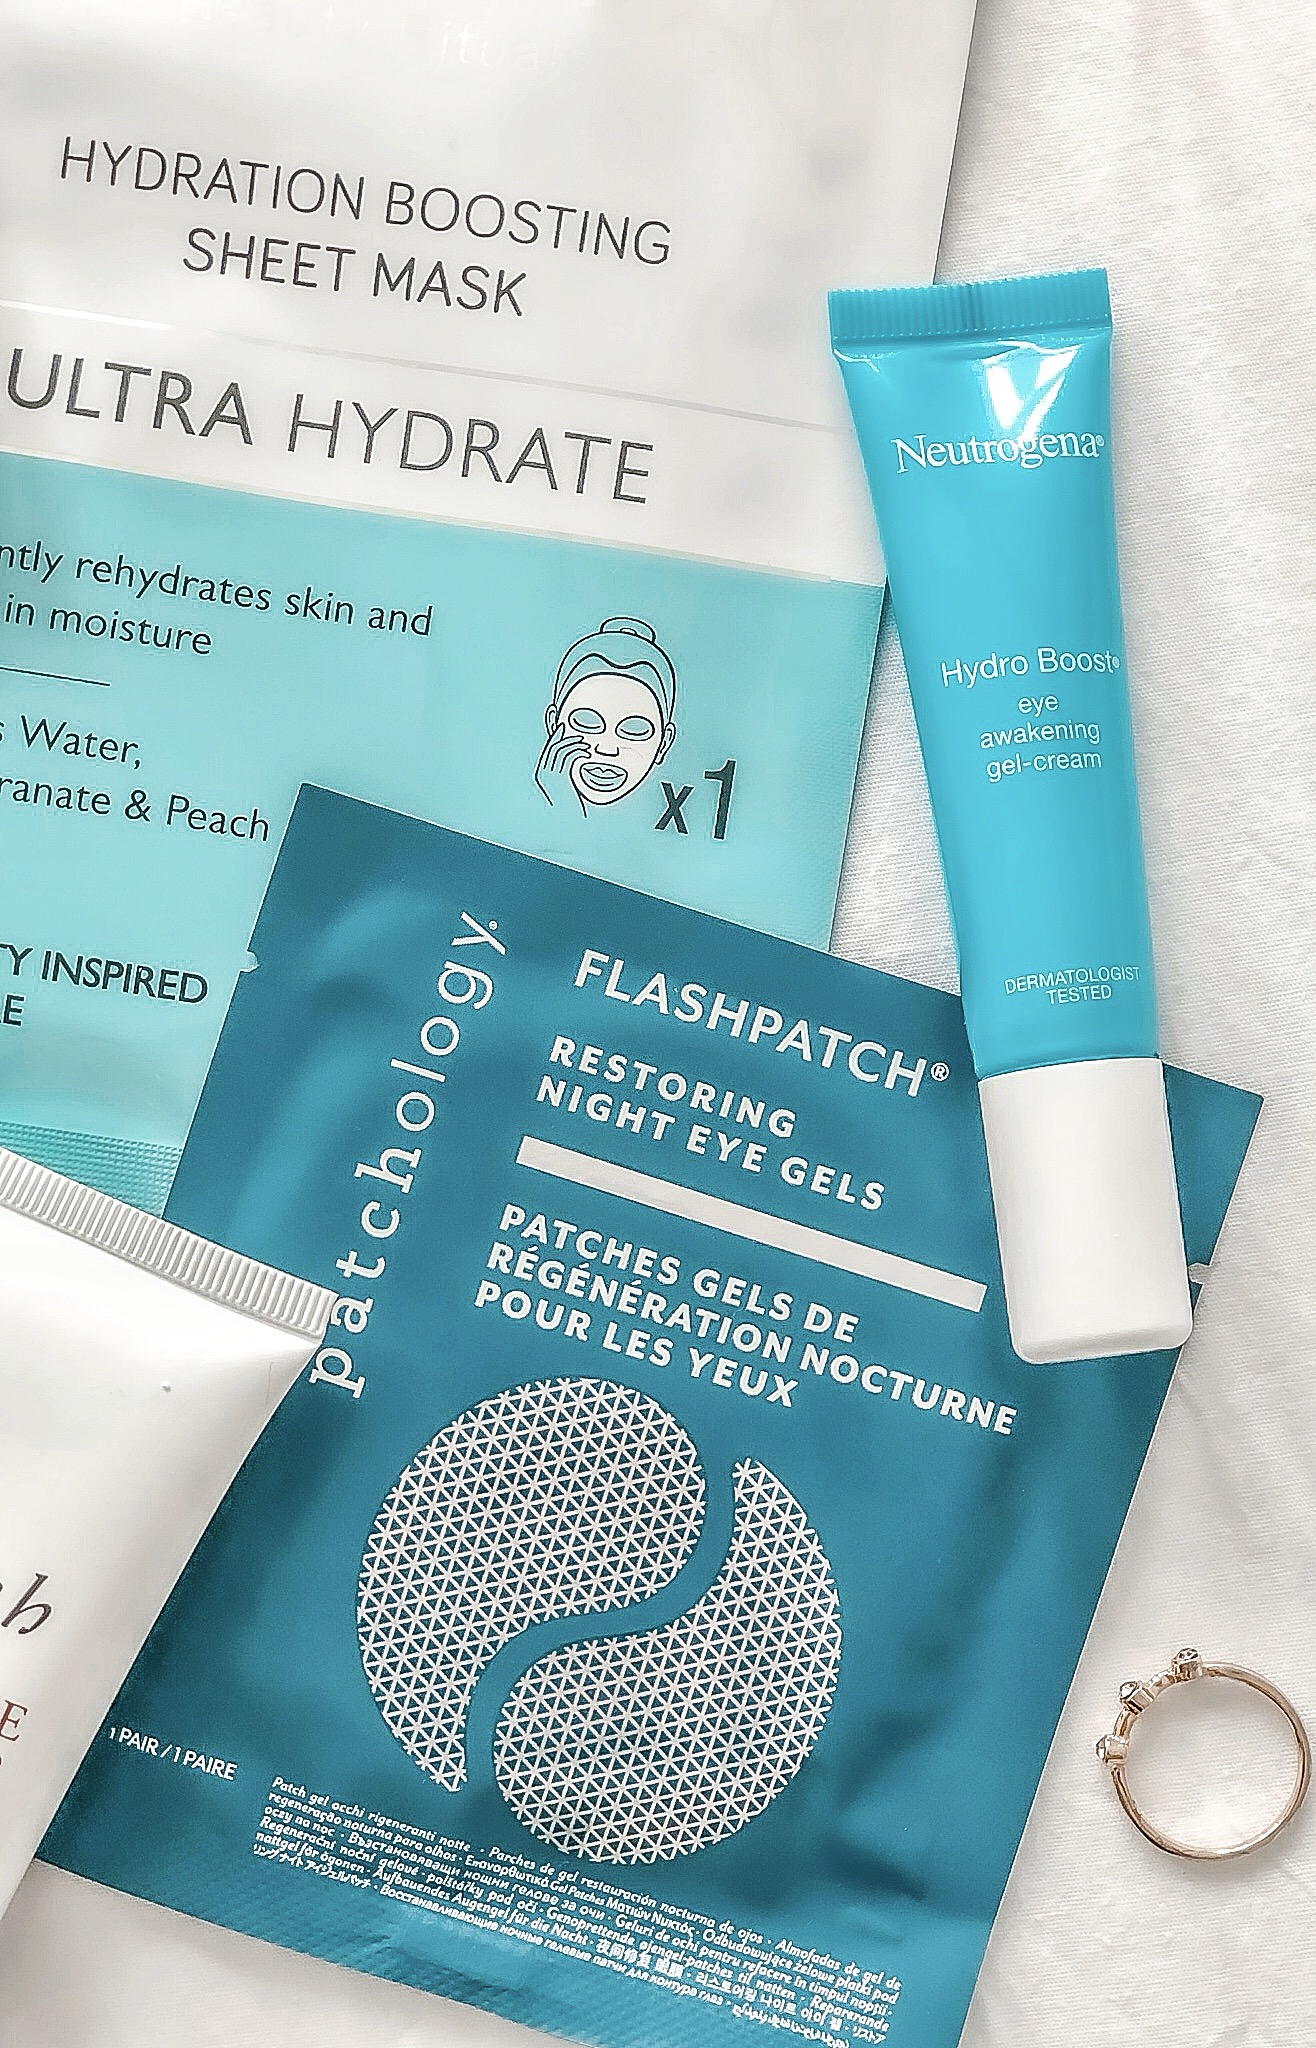 Hydrating Skincare products and lifestyle tips